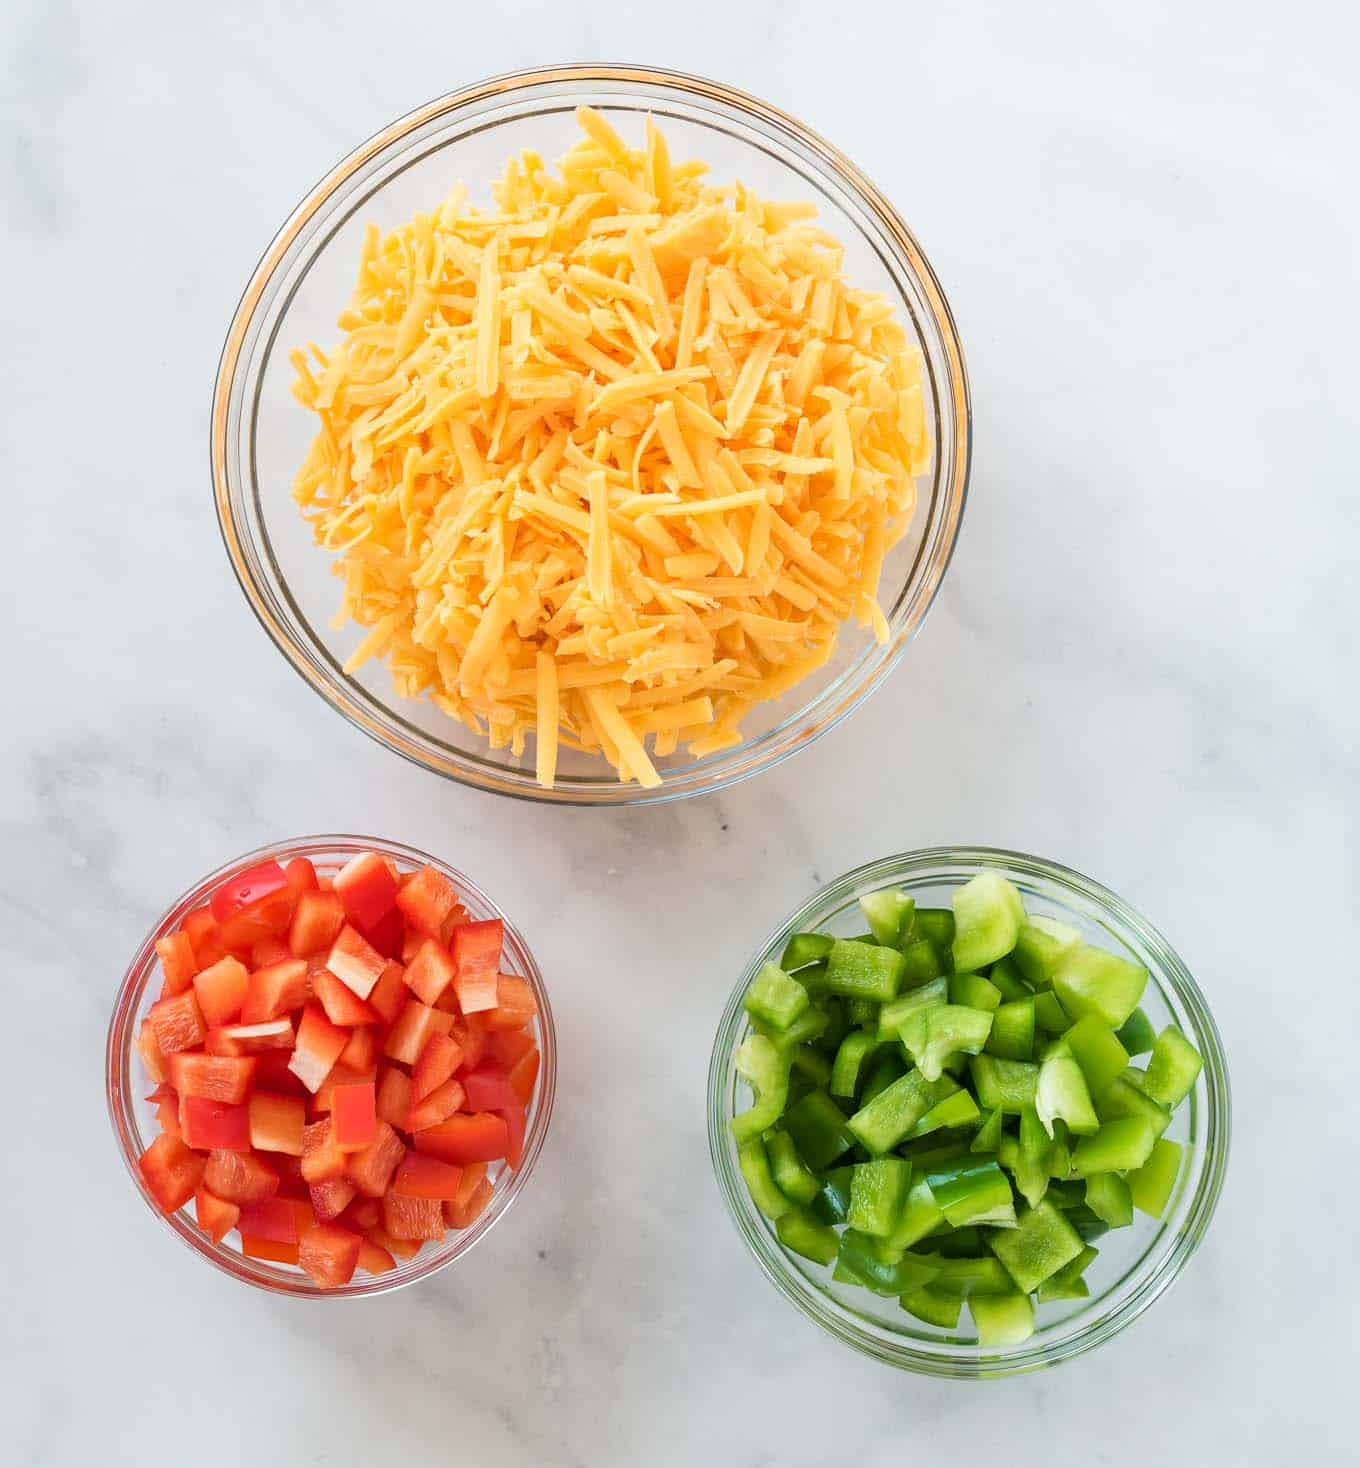 cheese, red bell pepper, and green bell pepper in separate glass bowls